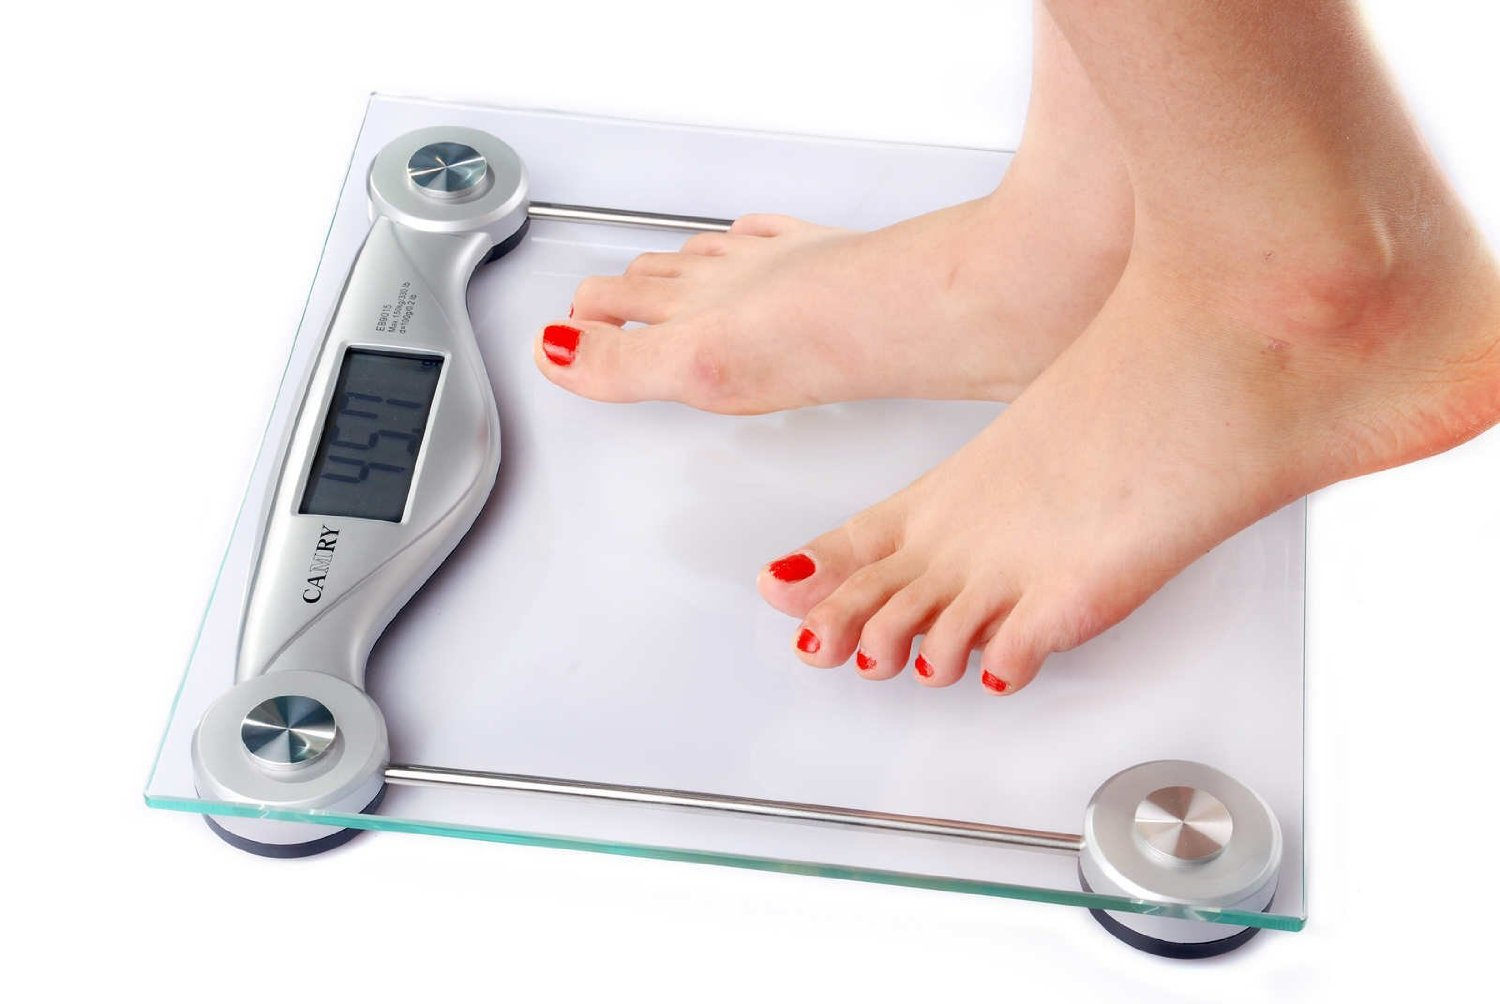 Amazon.com: Camry Precision Digital Bathroom Scale Strong Tempered Glass Platform Measures in Pound or Kg, Silver Color, Body Scale: Health & Personal Care